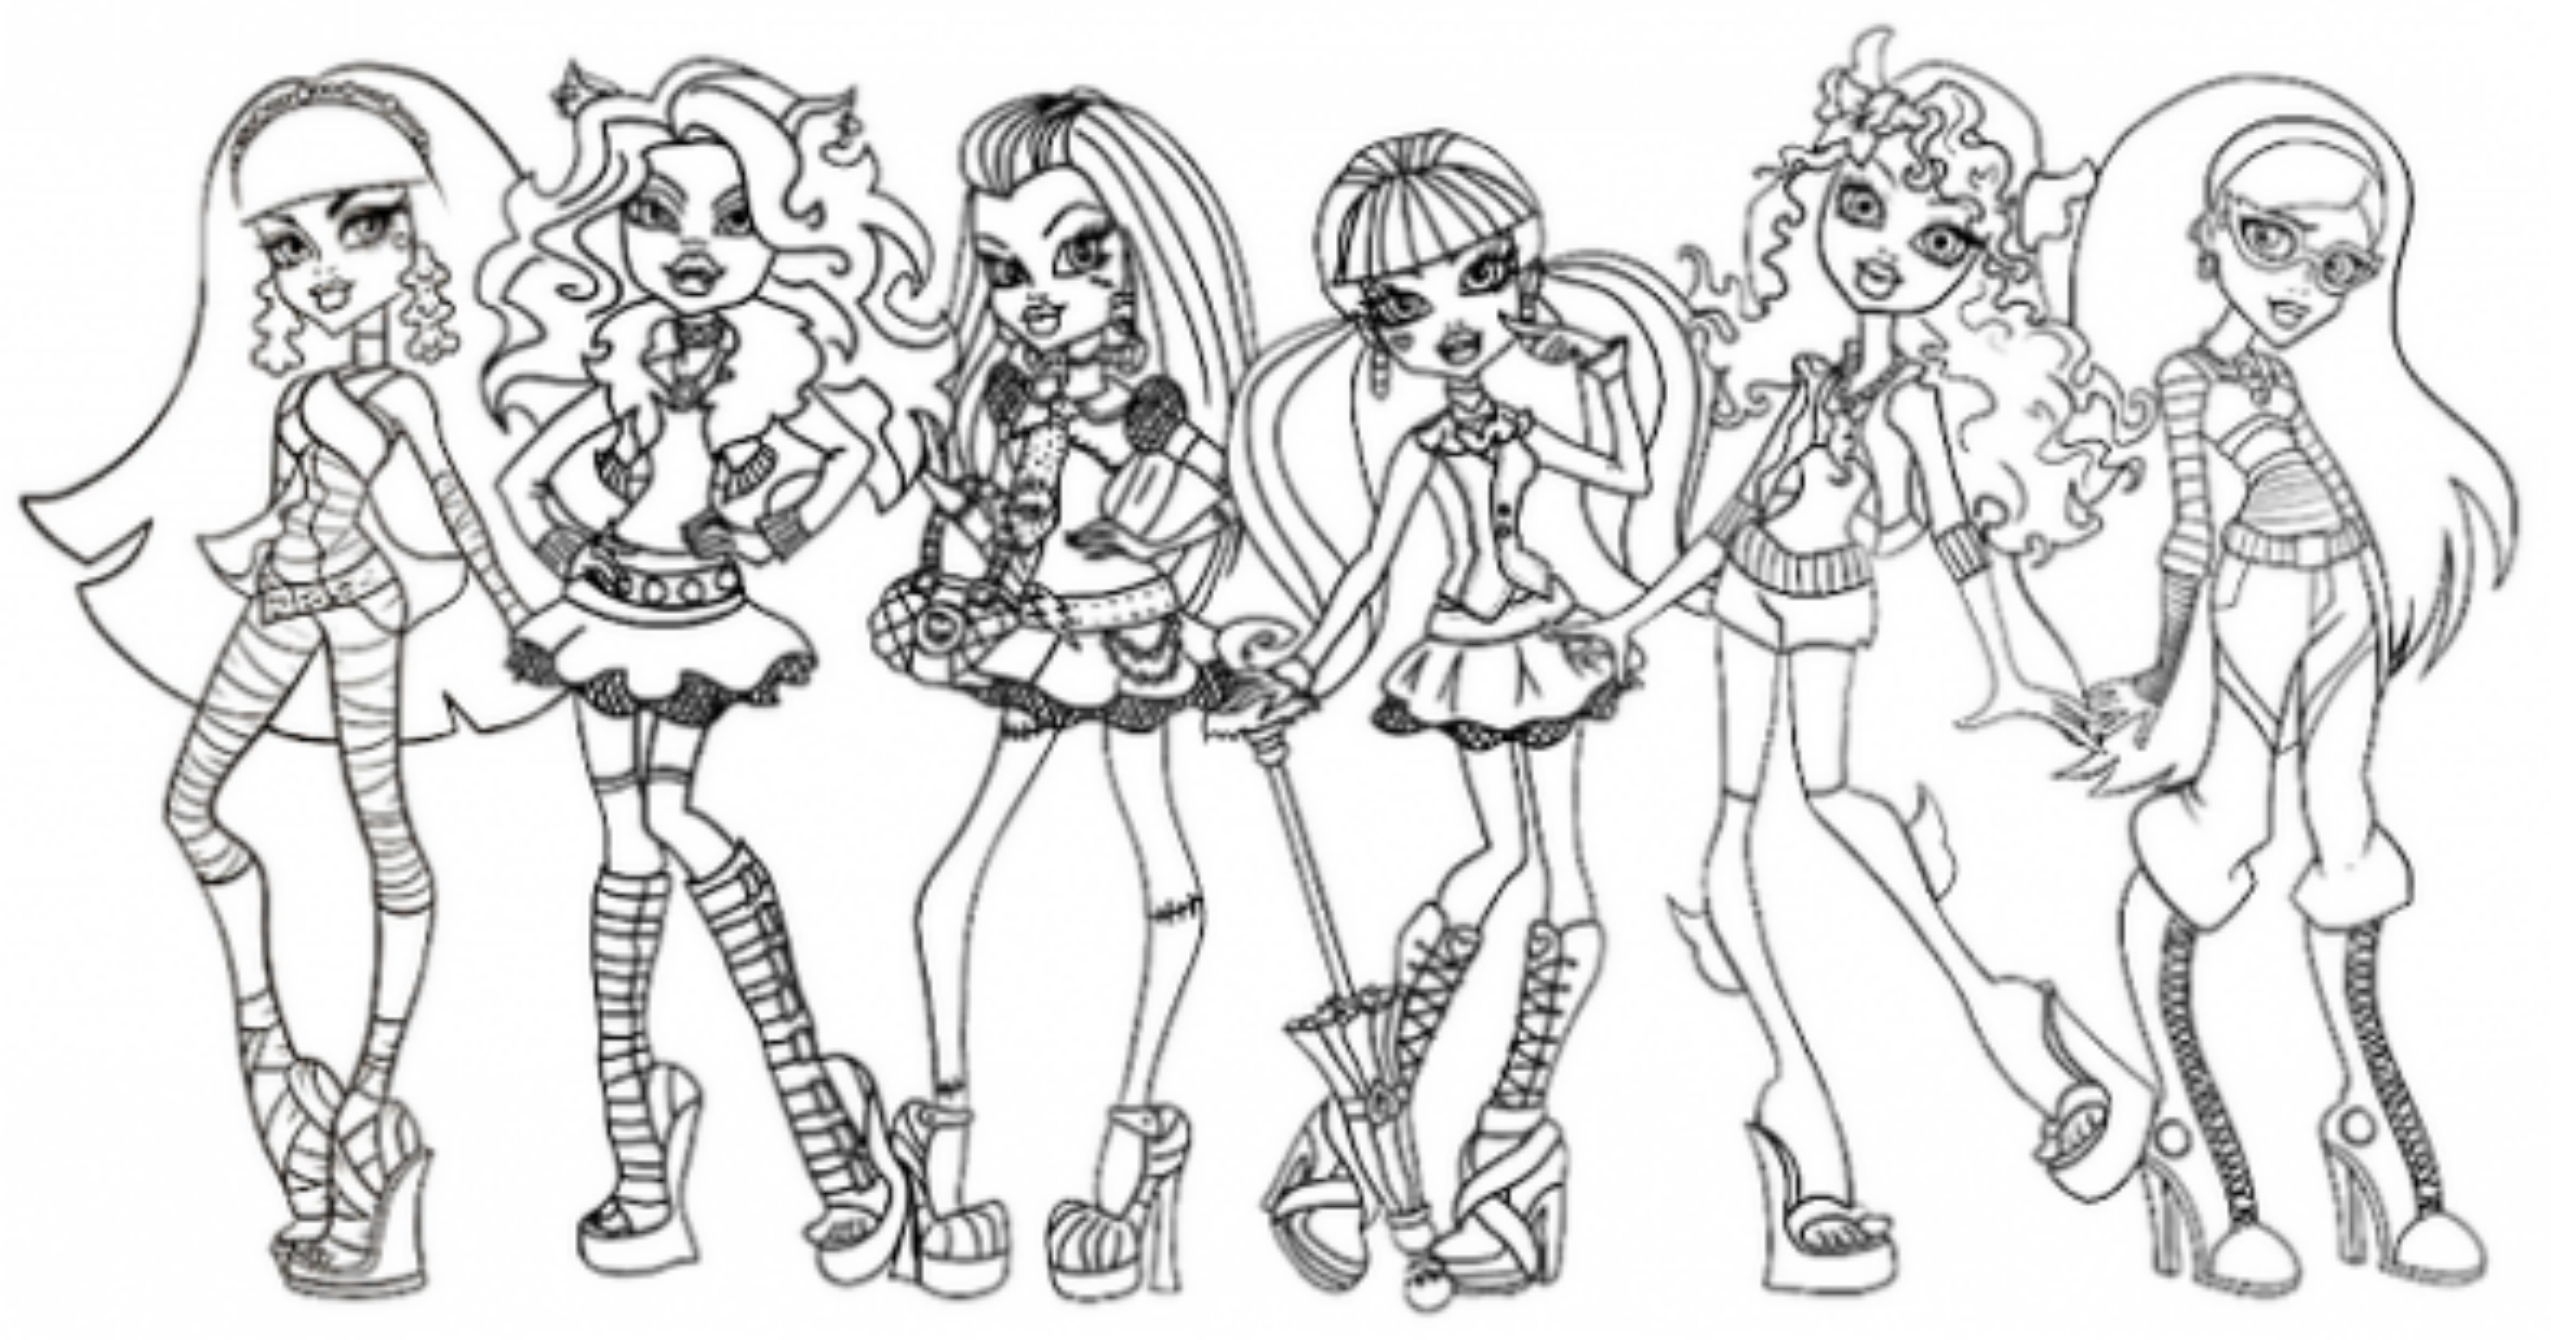 Monster High Coloring Page All Characters Printable Monster High Download Of Inspiring Monster High Coloring Pages Colouring Sheets Printables Gallery